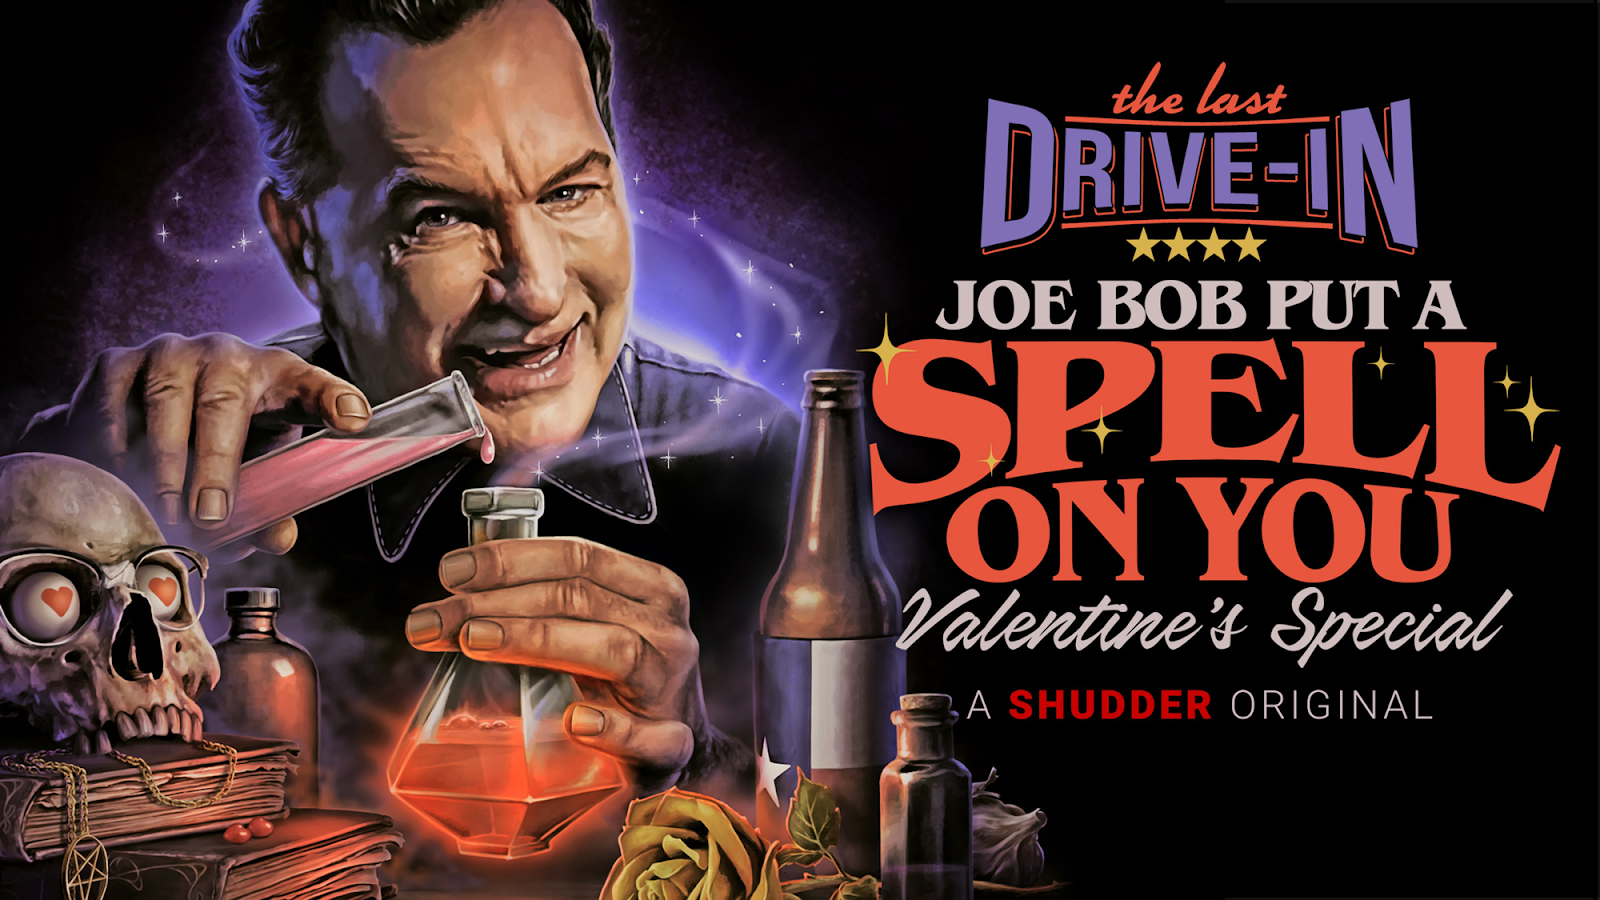 What's Streaming on Shudder in February 2021: New Movies, TV Shows, and Joe Bob Briggs